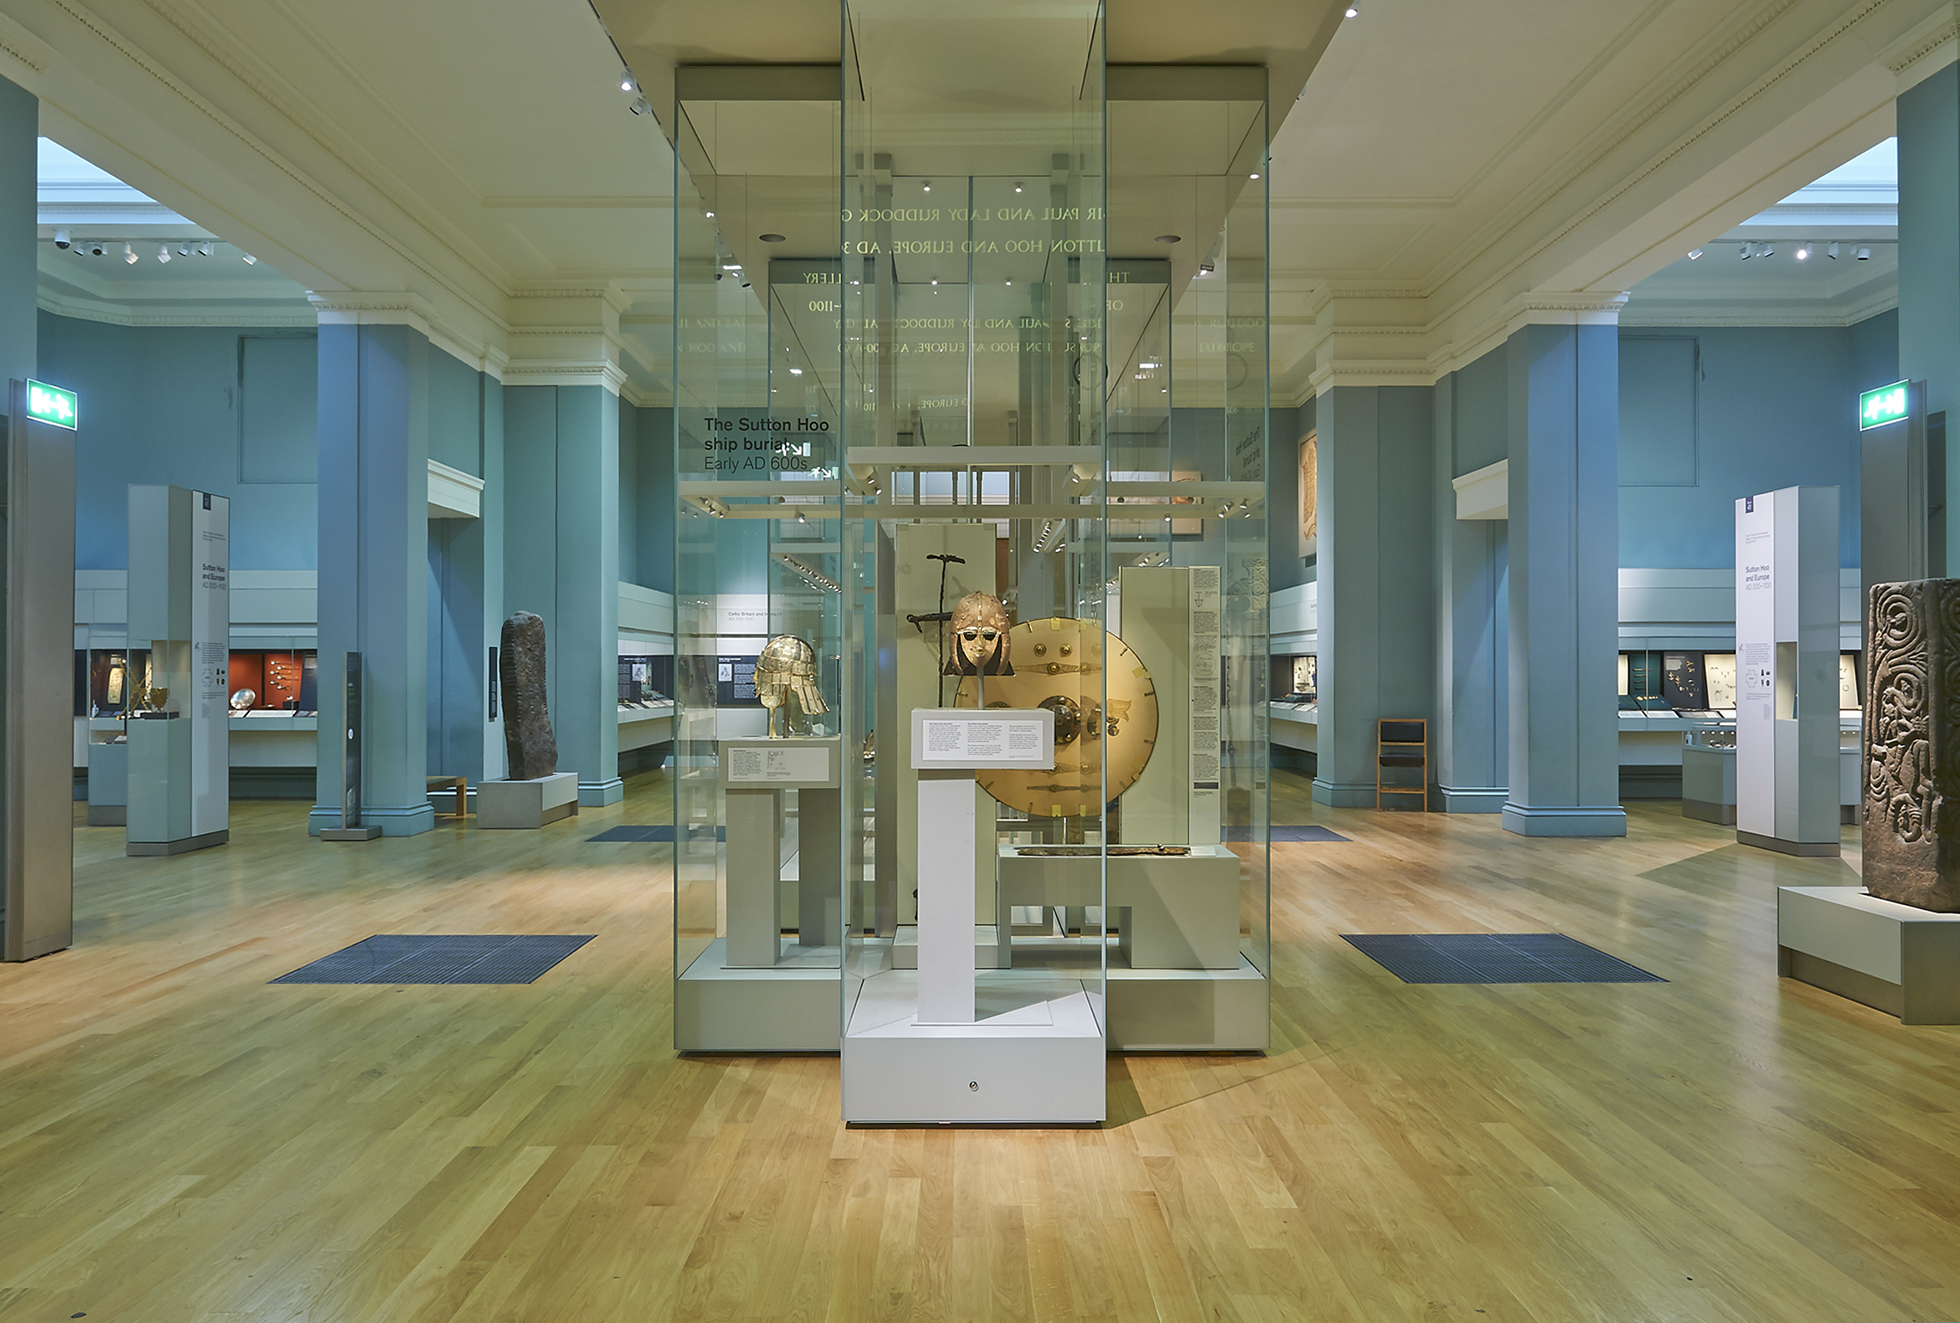 A photograph of the Sutton Hoo finds on display in glass cases in the Museum